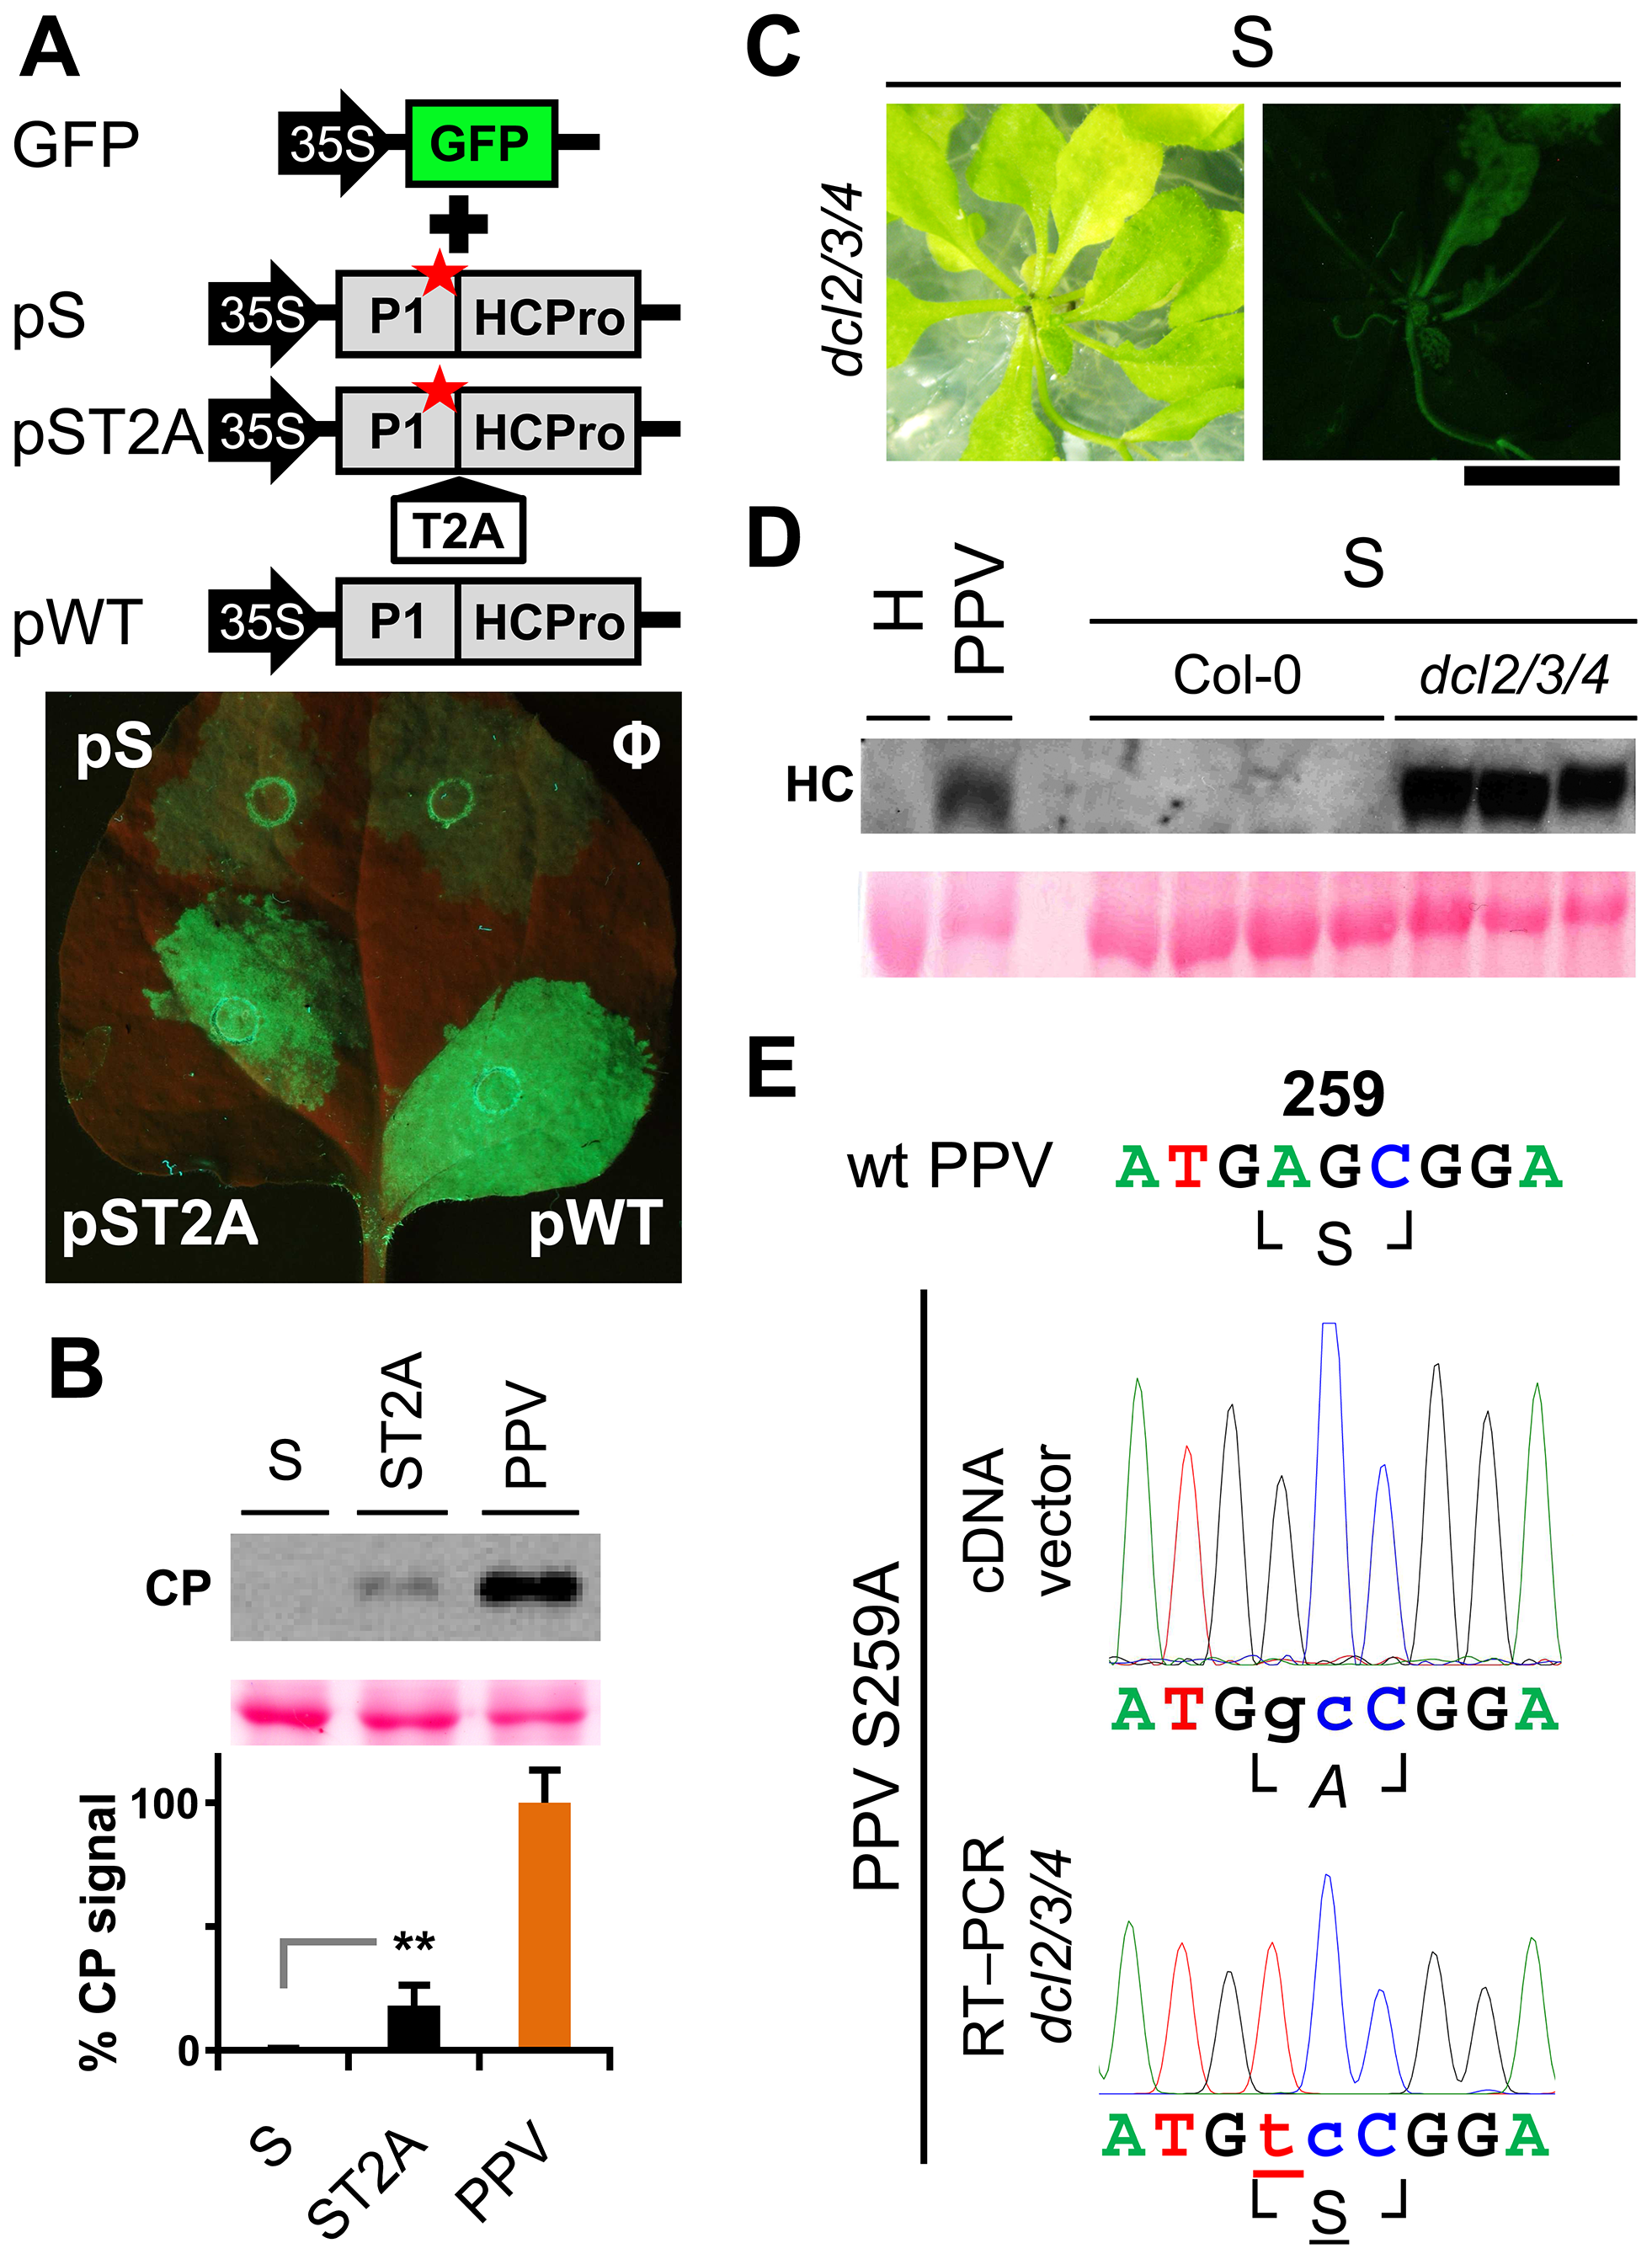 RNA silencing suppression is impaired by the lack of separation between P1 and HCPro.